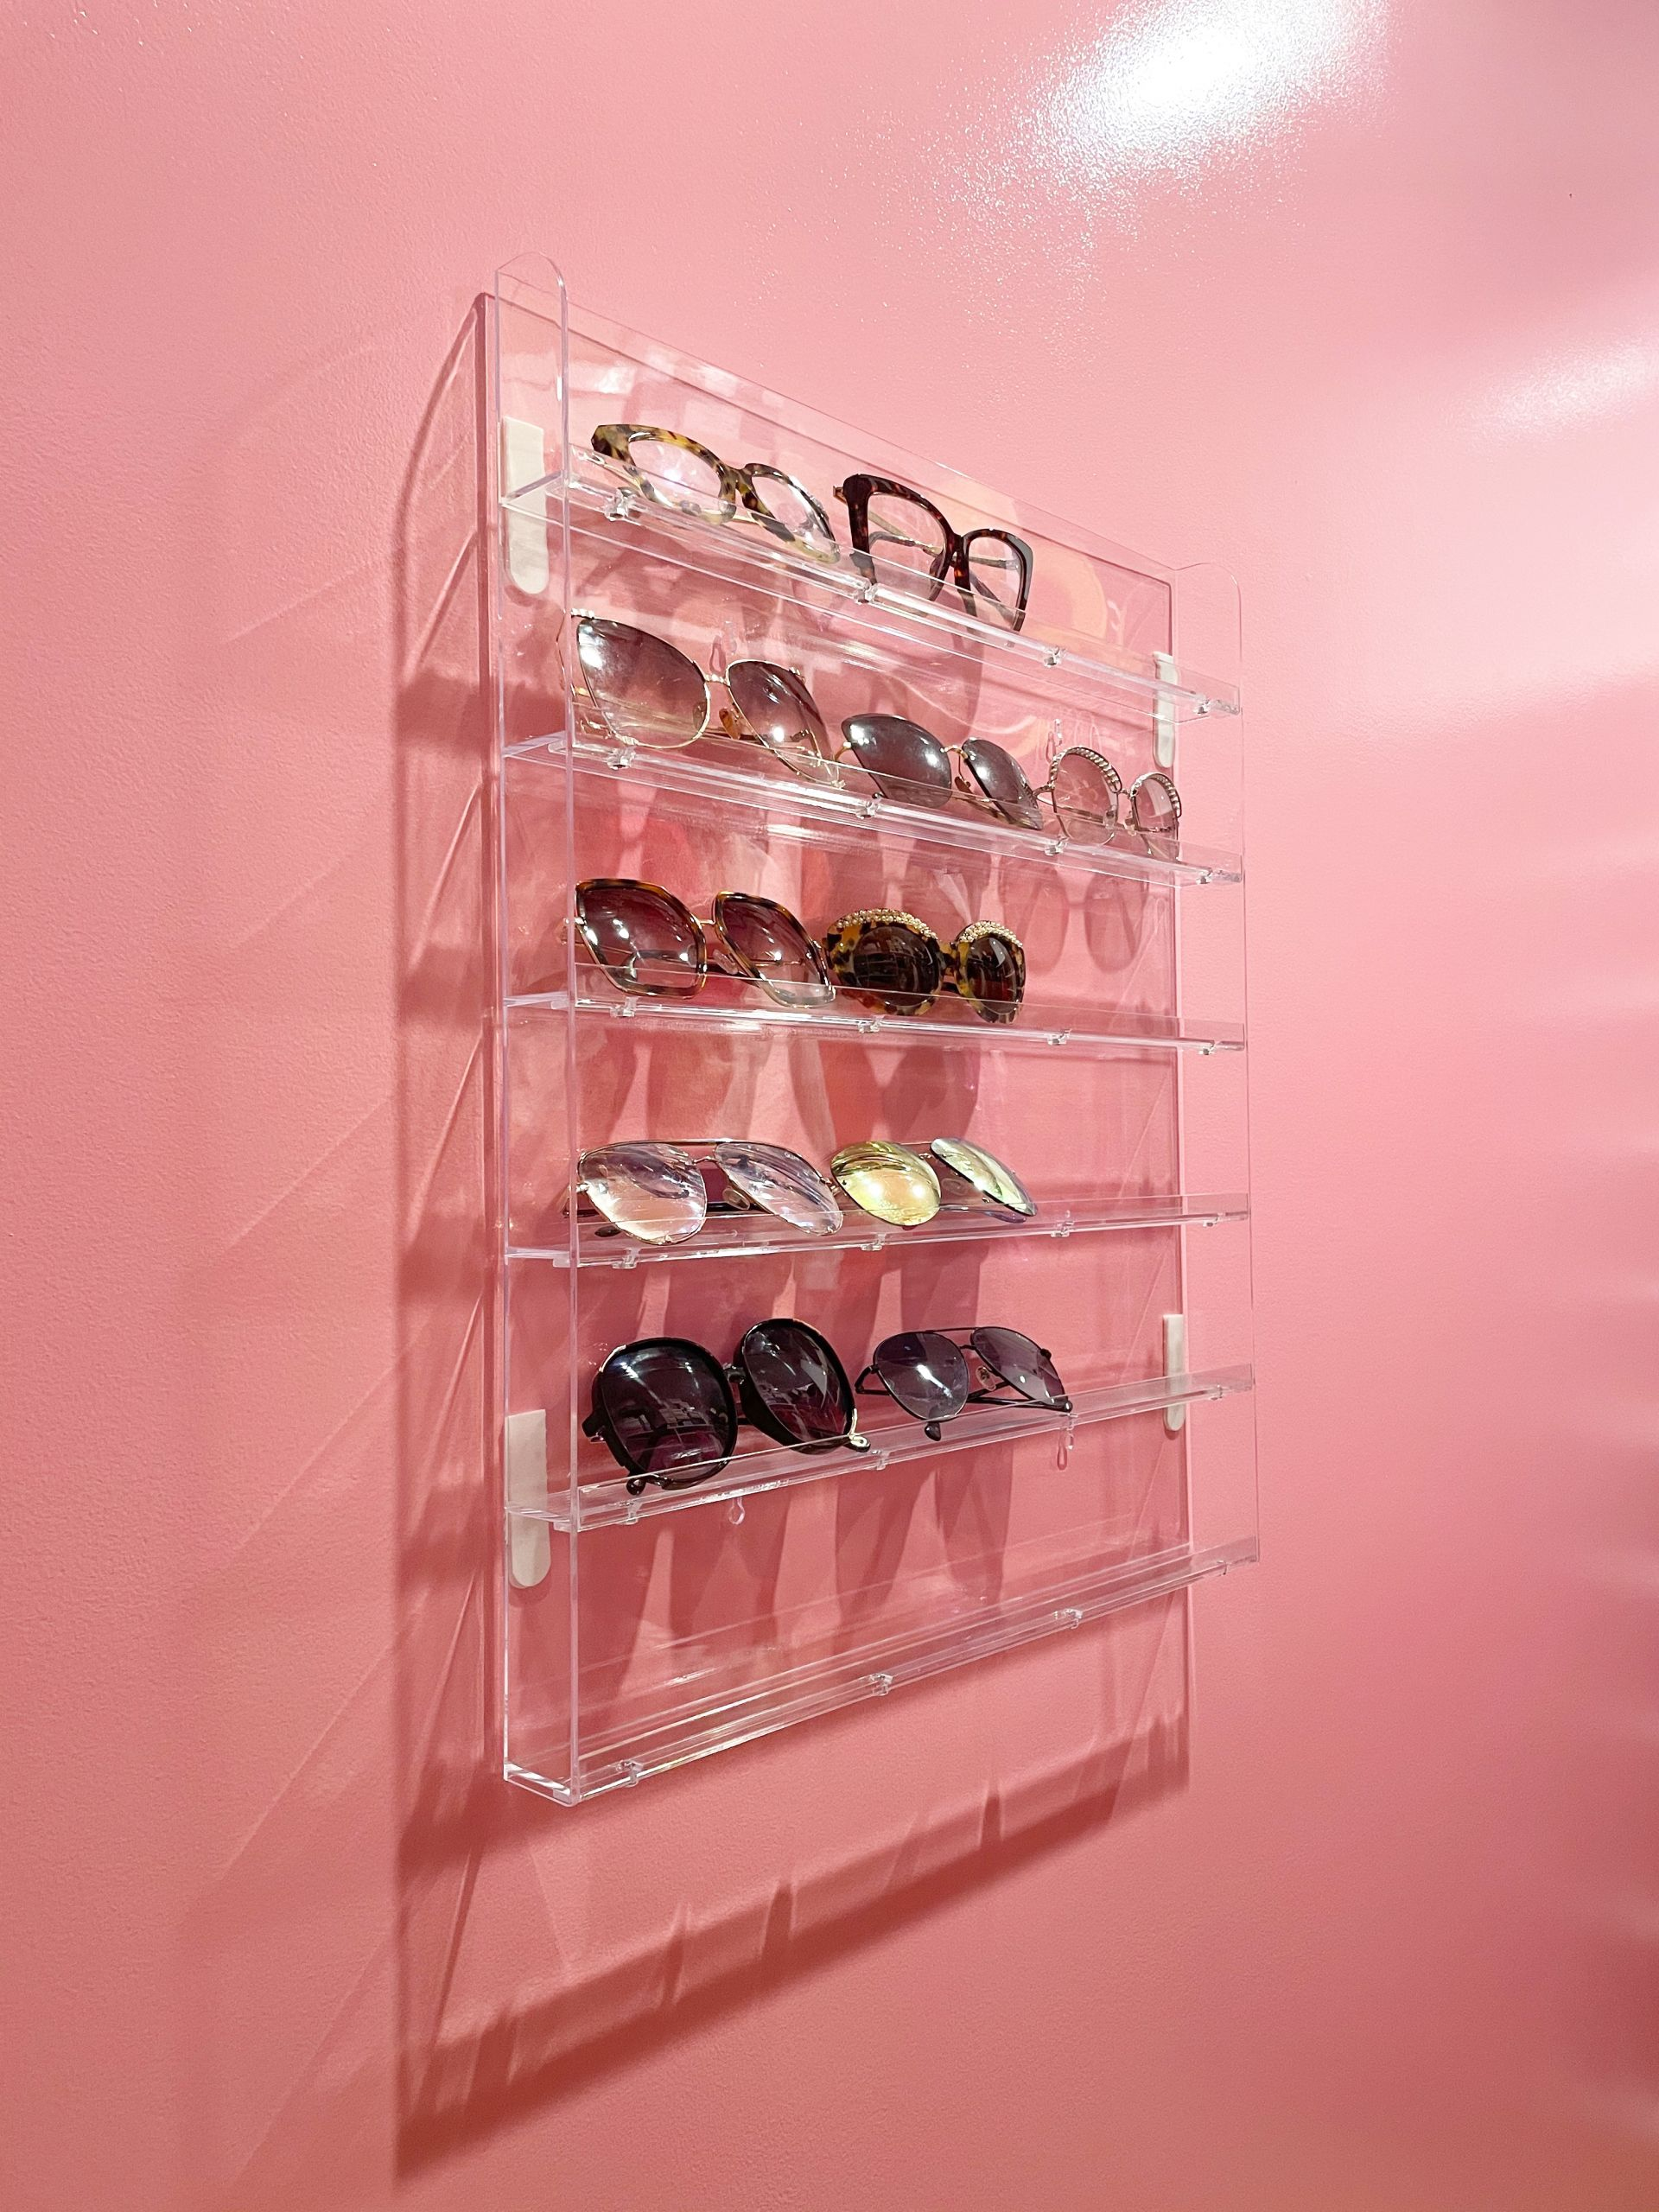 How to Store Your Sunglasses, sunglasses storage, clear sunglasses storage, clear sunglasses organization, how to organize sunglasses, sunglasses organization, accessories organization, closet organization ideas, accessories storage ideas, affordable accessories storage, pink closet, closet goals, girly closet, Jennifer Worman, Red Soles and Red Wine, pink wall, pink accent wall